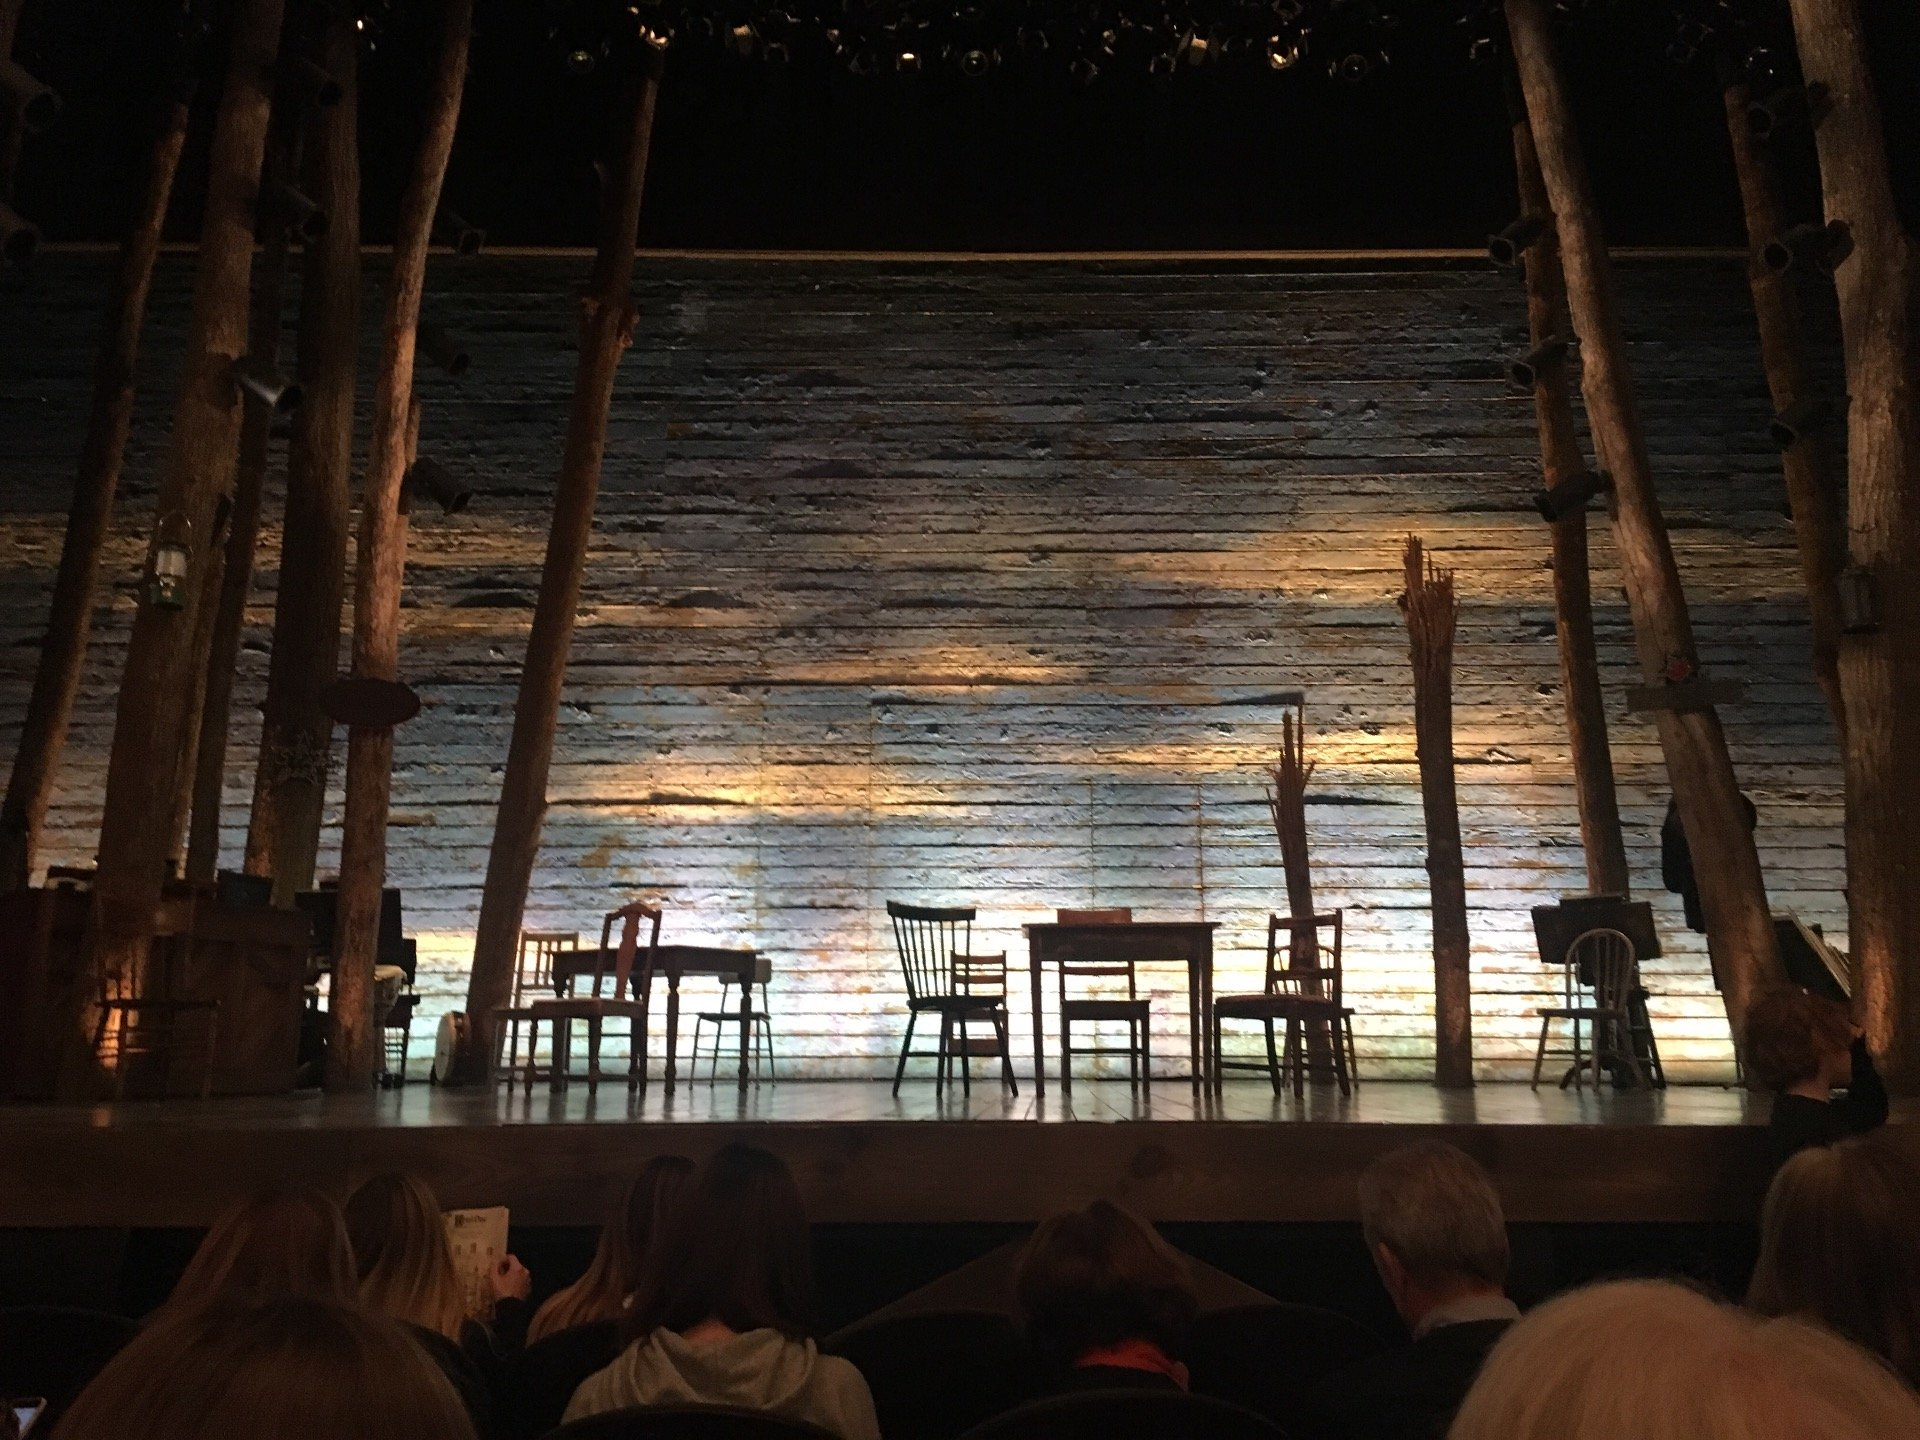 Gerald Schoenfeld Theatre Section Orchestra C Row D Seat 108